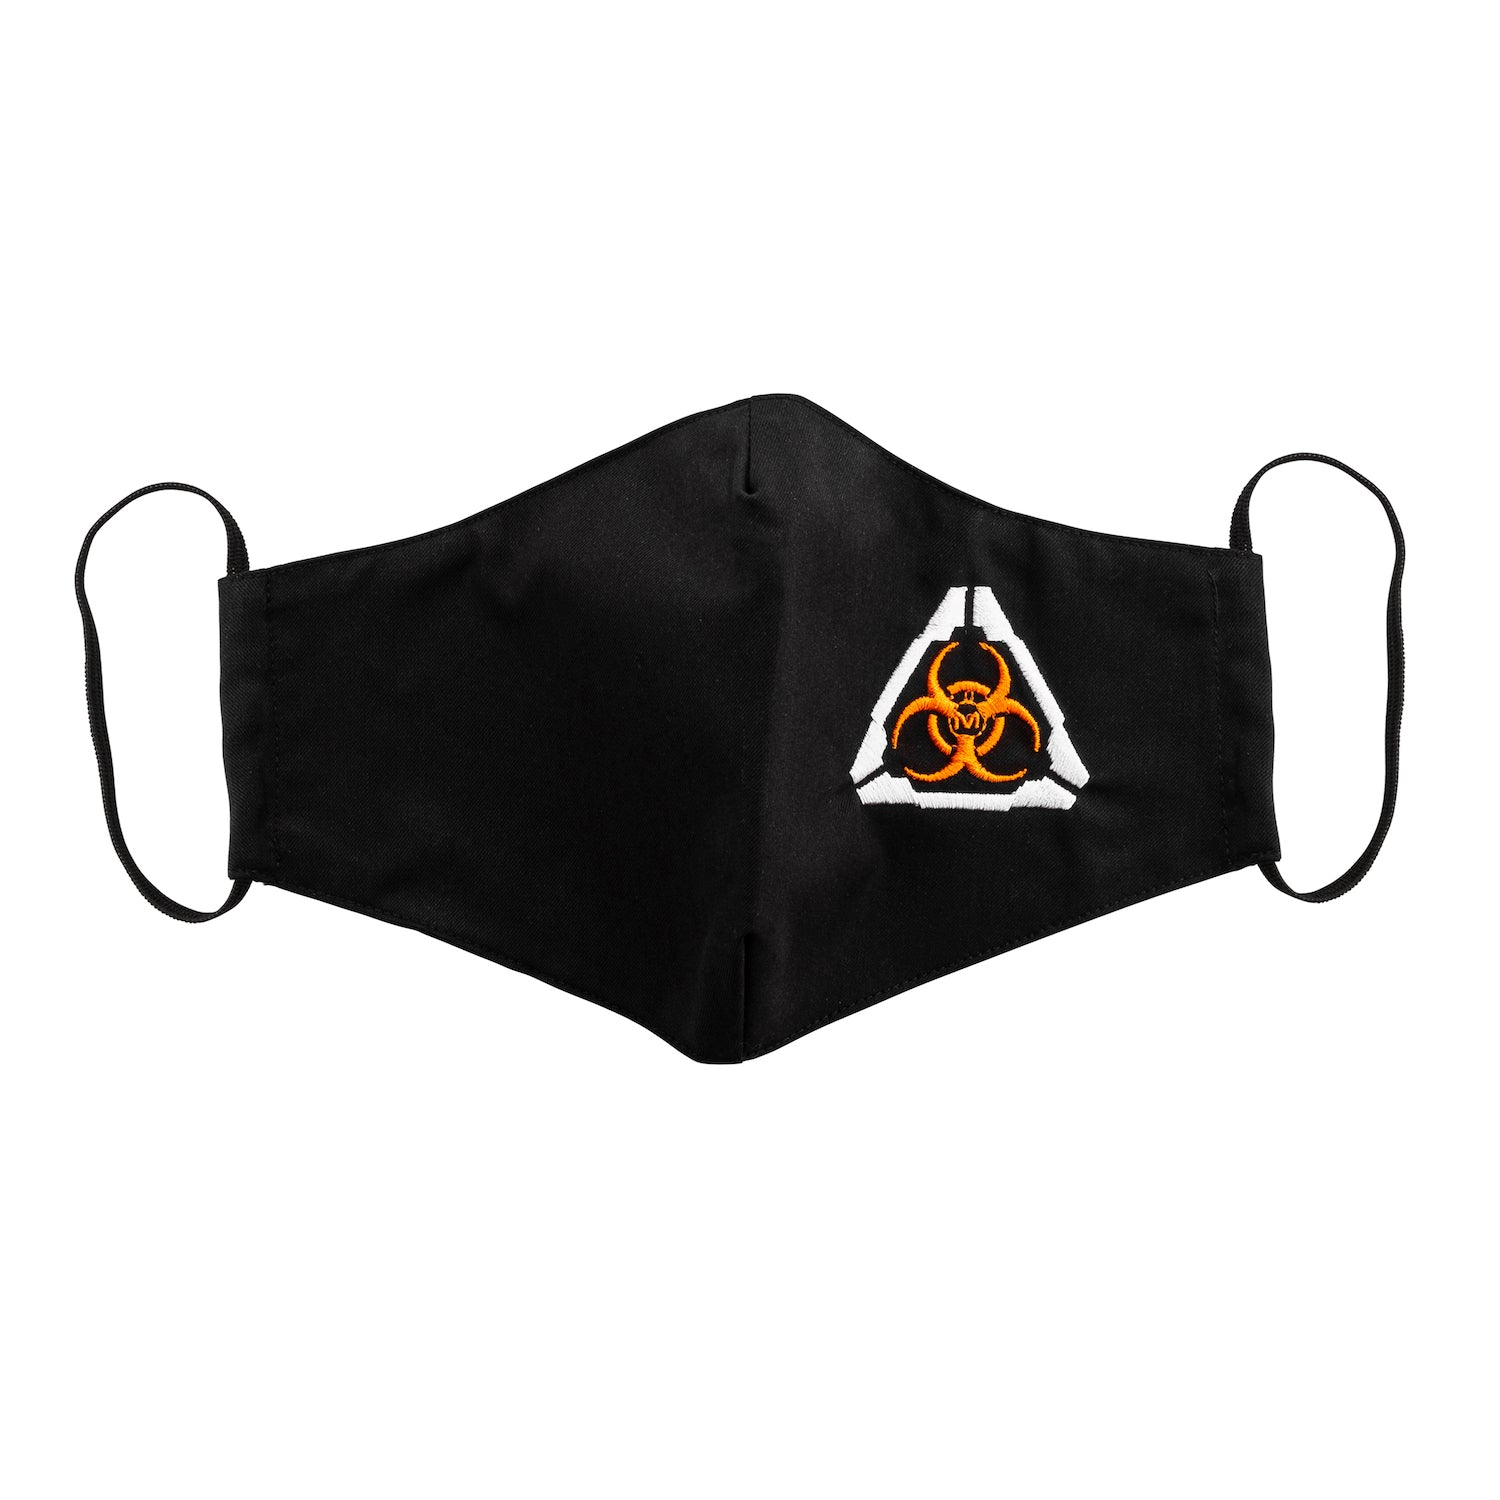 Front view of the MIRA Safety Protective Face Mask with biohazard insignia